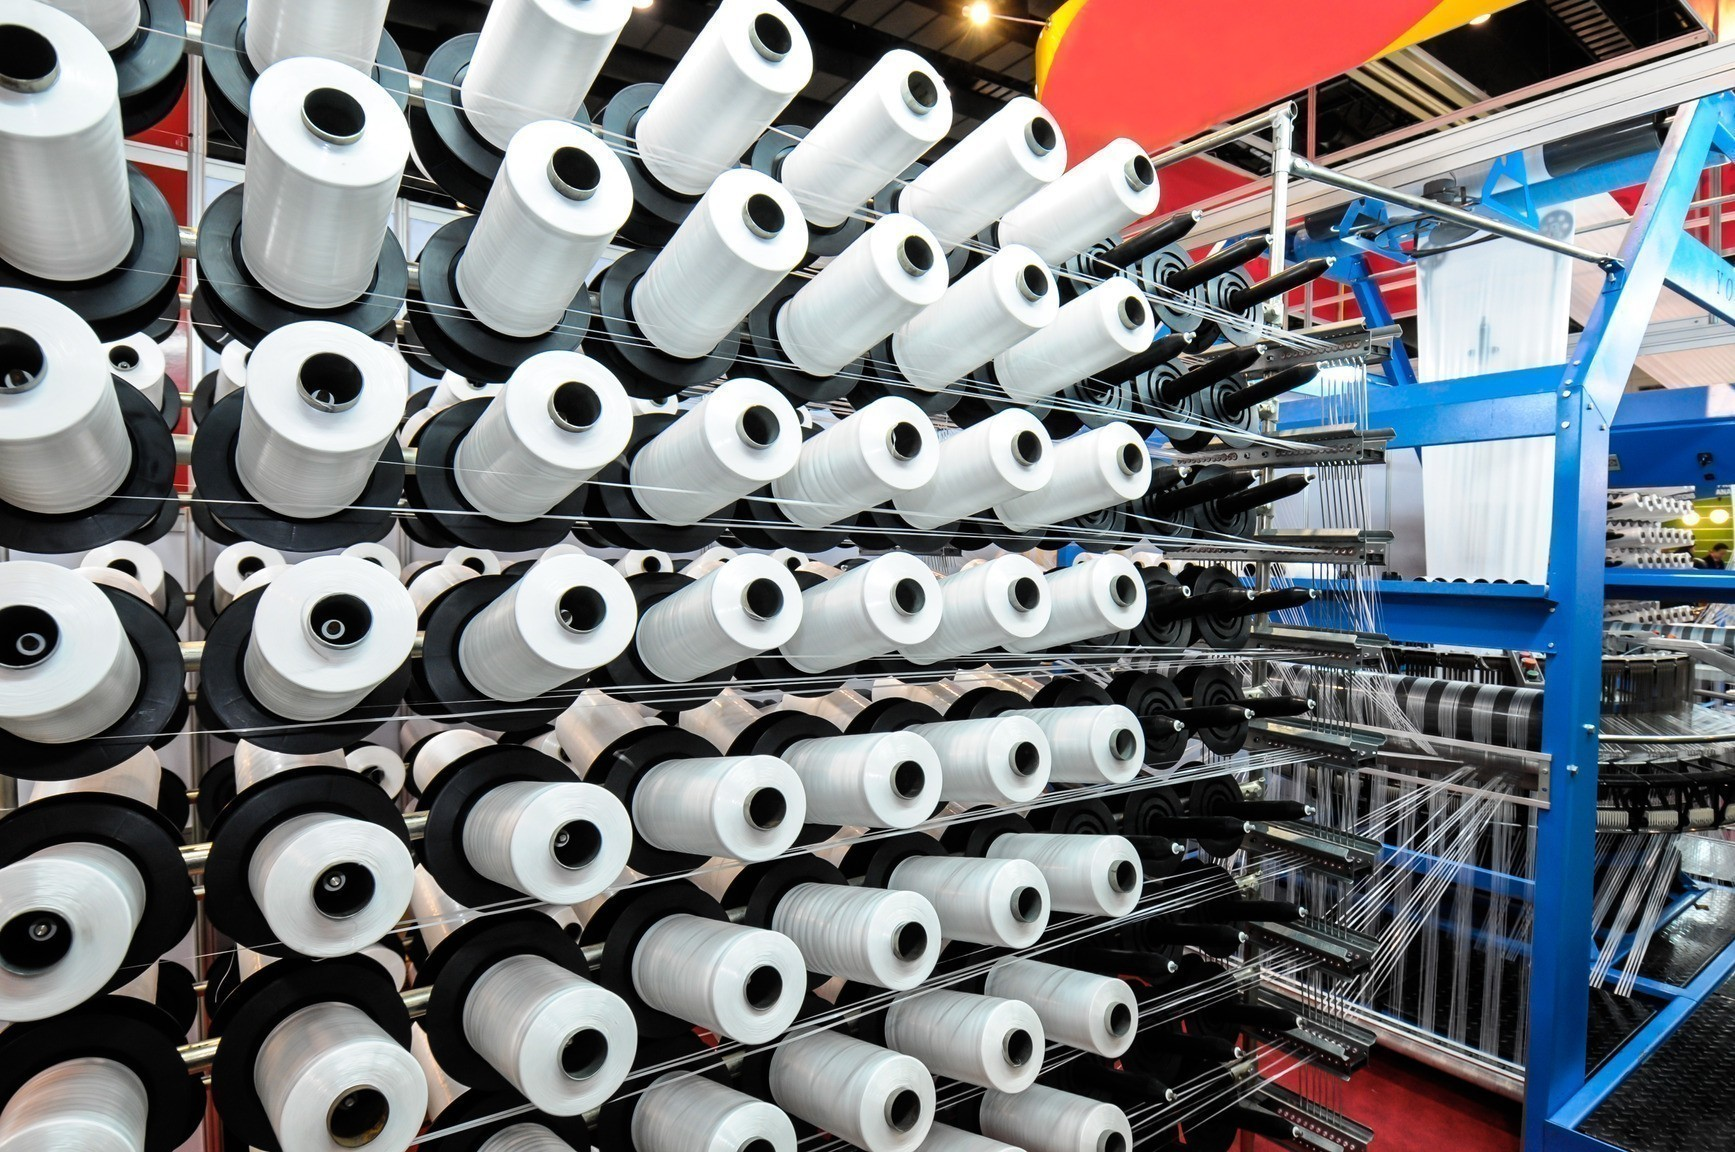 Textile industry - Weaving and warping